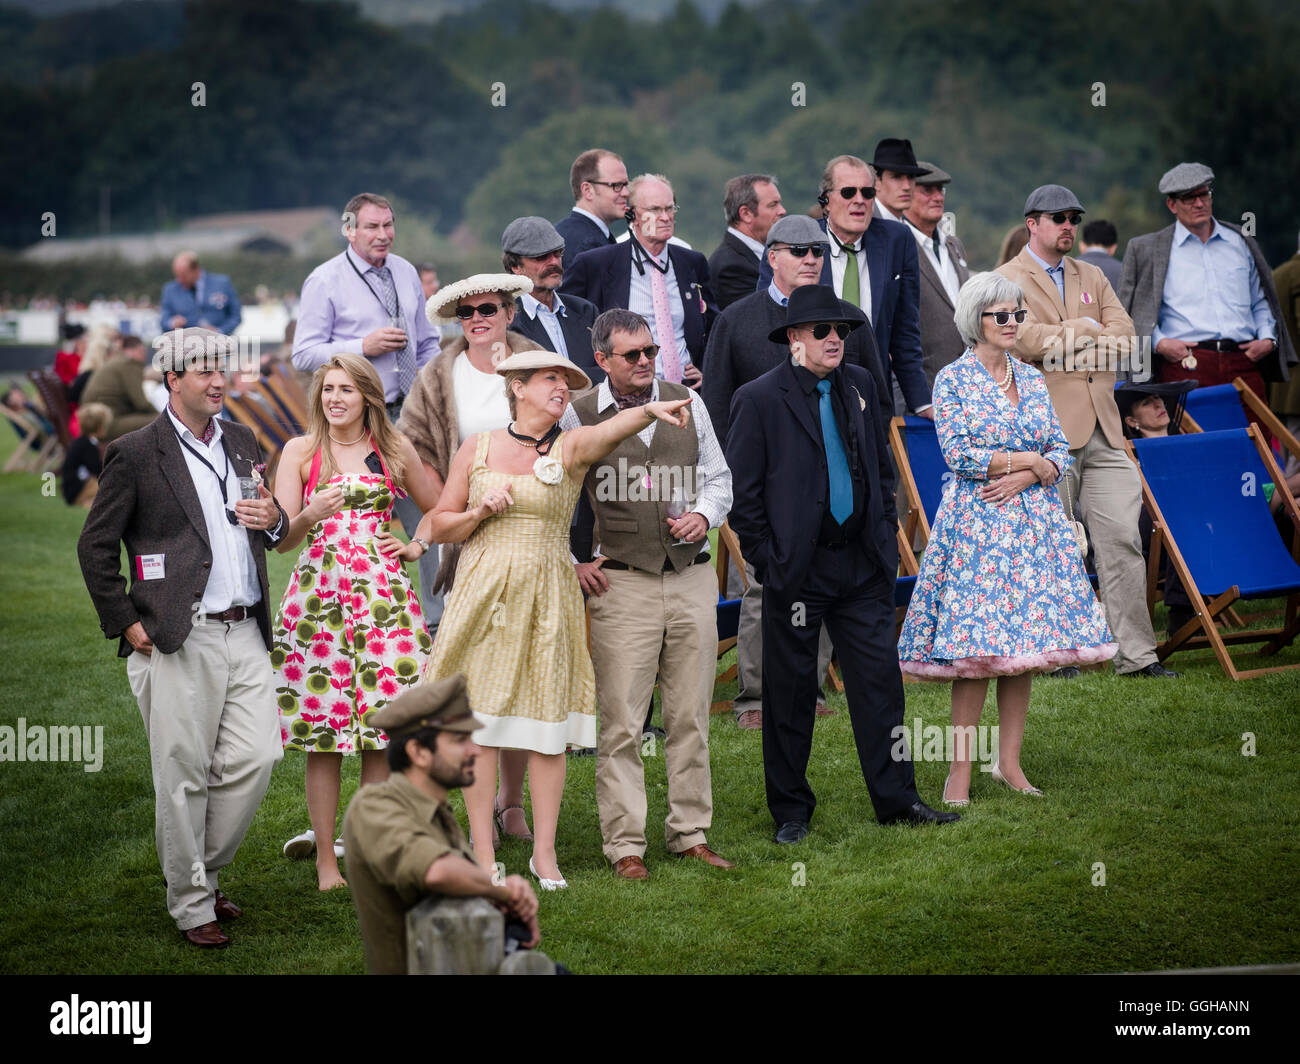 Besucher, Goodwood Revival 2014, Rennsport, Oldtimer, Goodwood, Chichester, Sussex, England, Großbritannien Stockbild